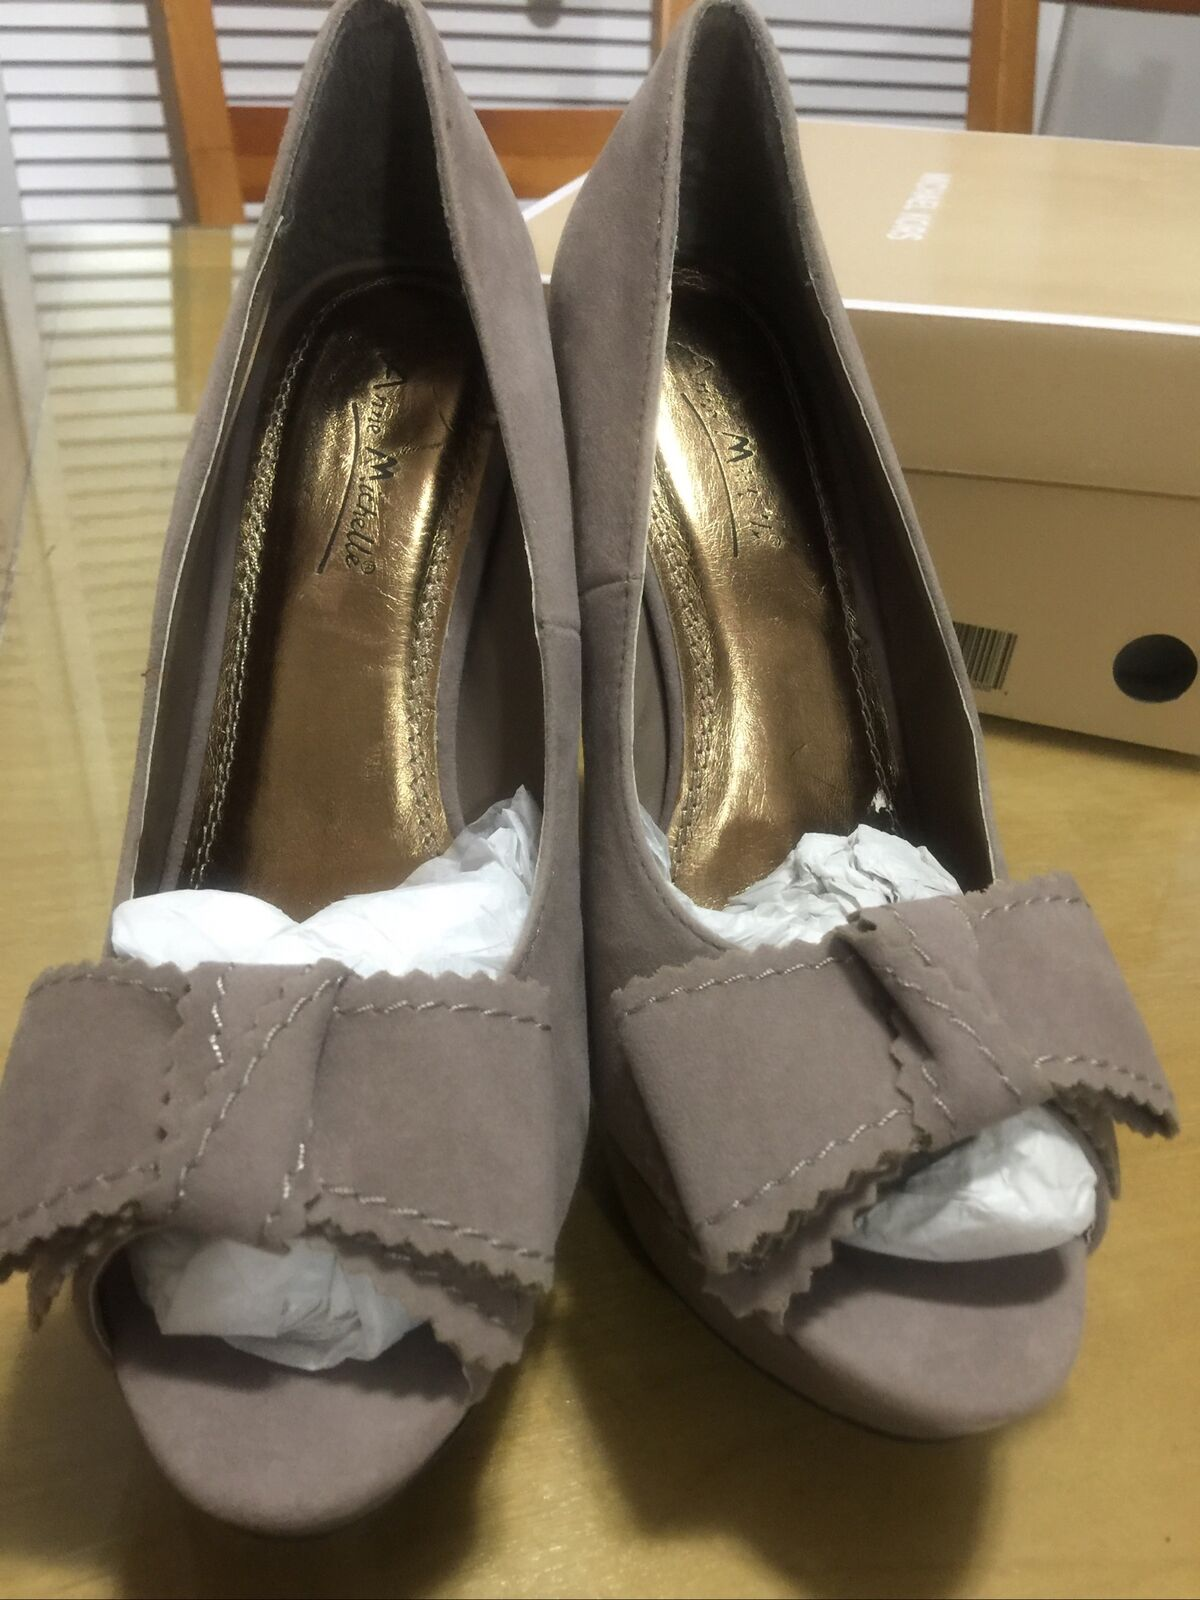 anne michelle shoes Dress Heel With Bow Tie Open Toe Upper Shoes Is Fabric/ Sued